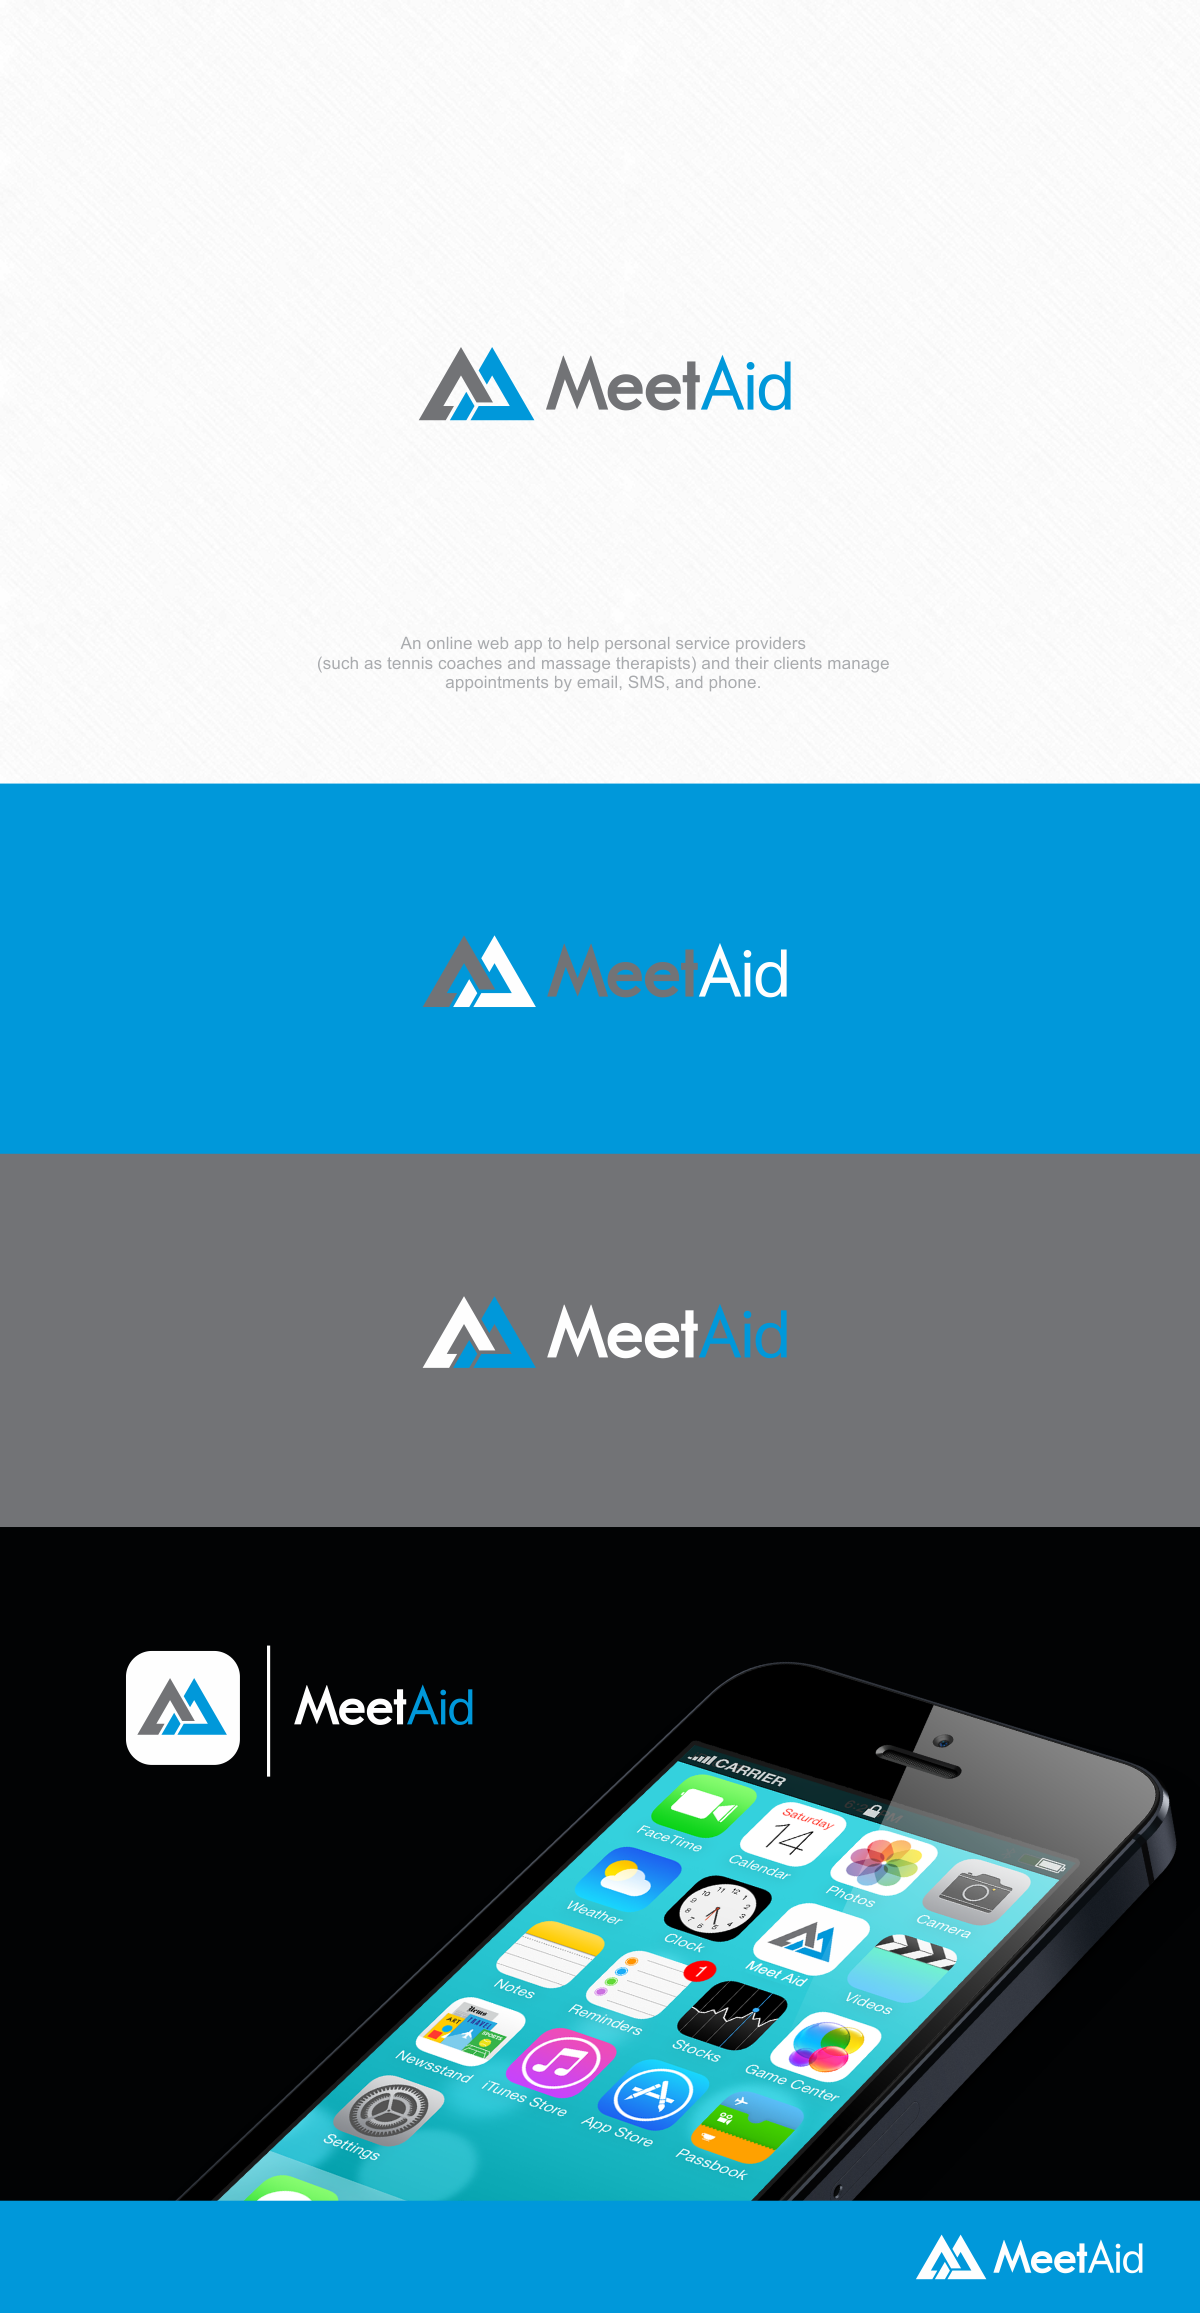 Design web app logo for startup helping people communicate about personal appointments